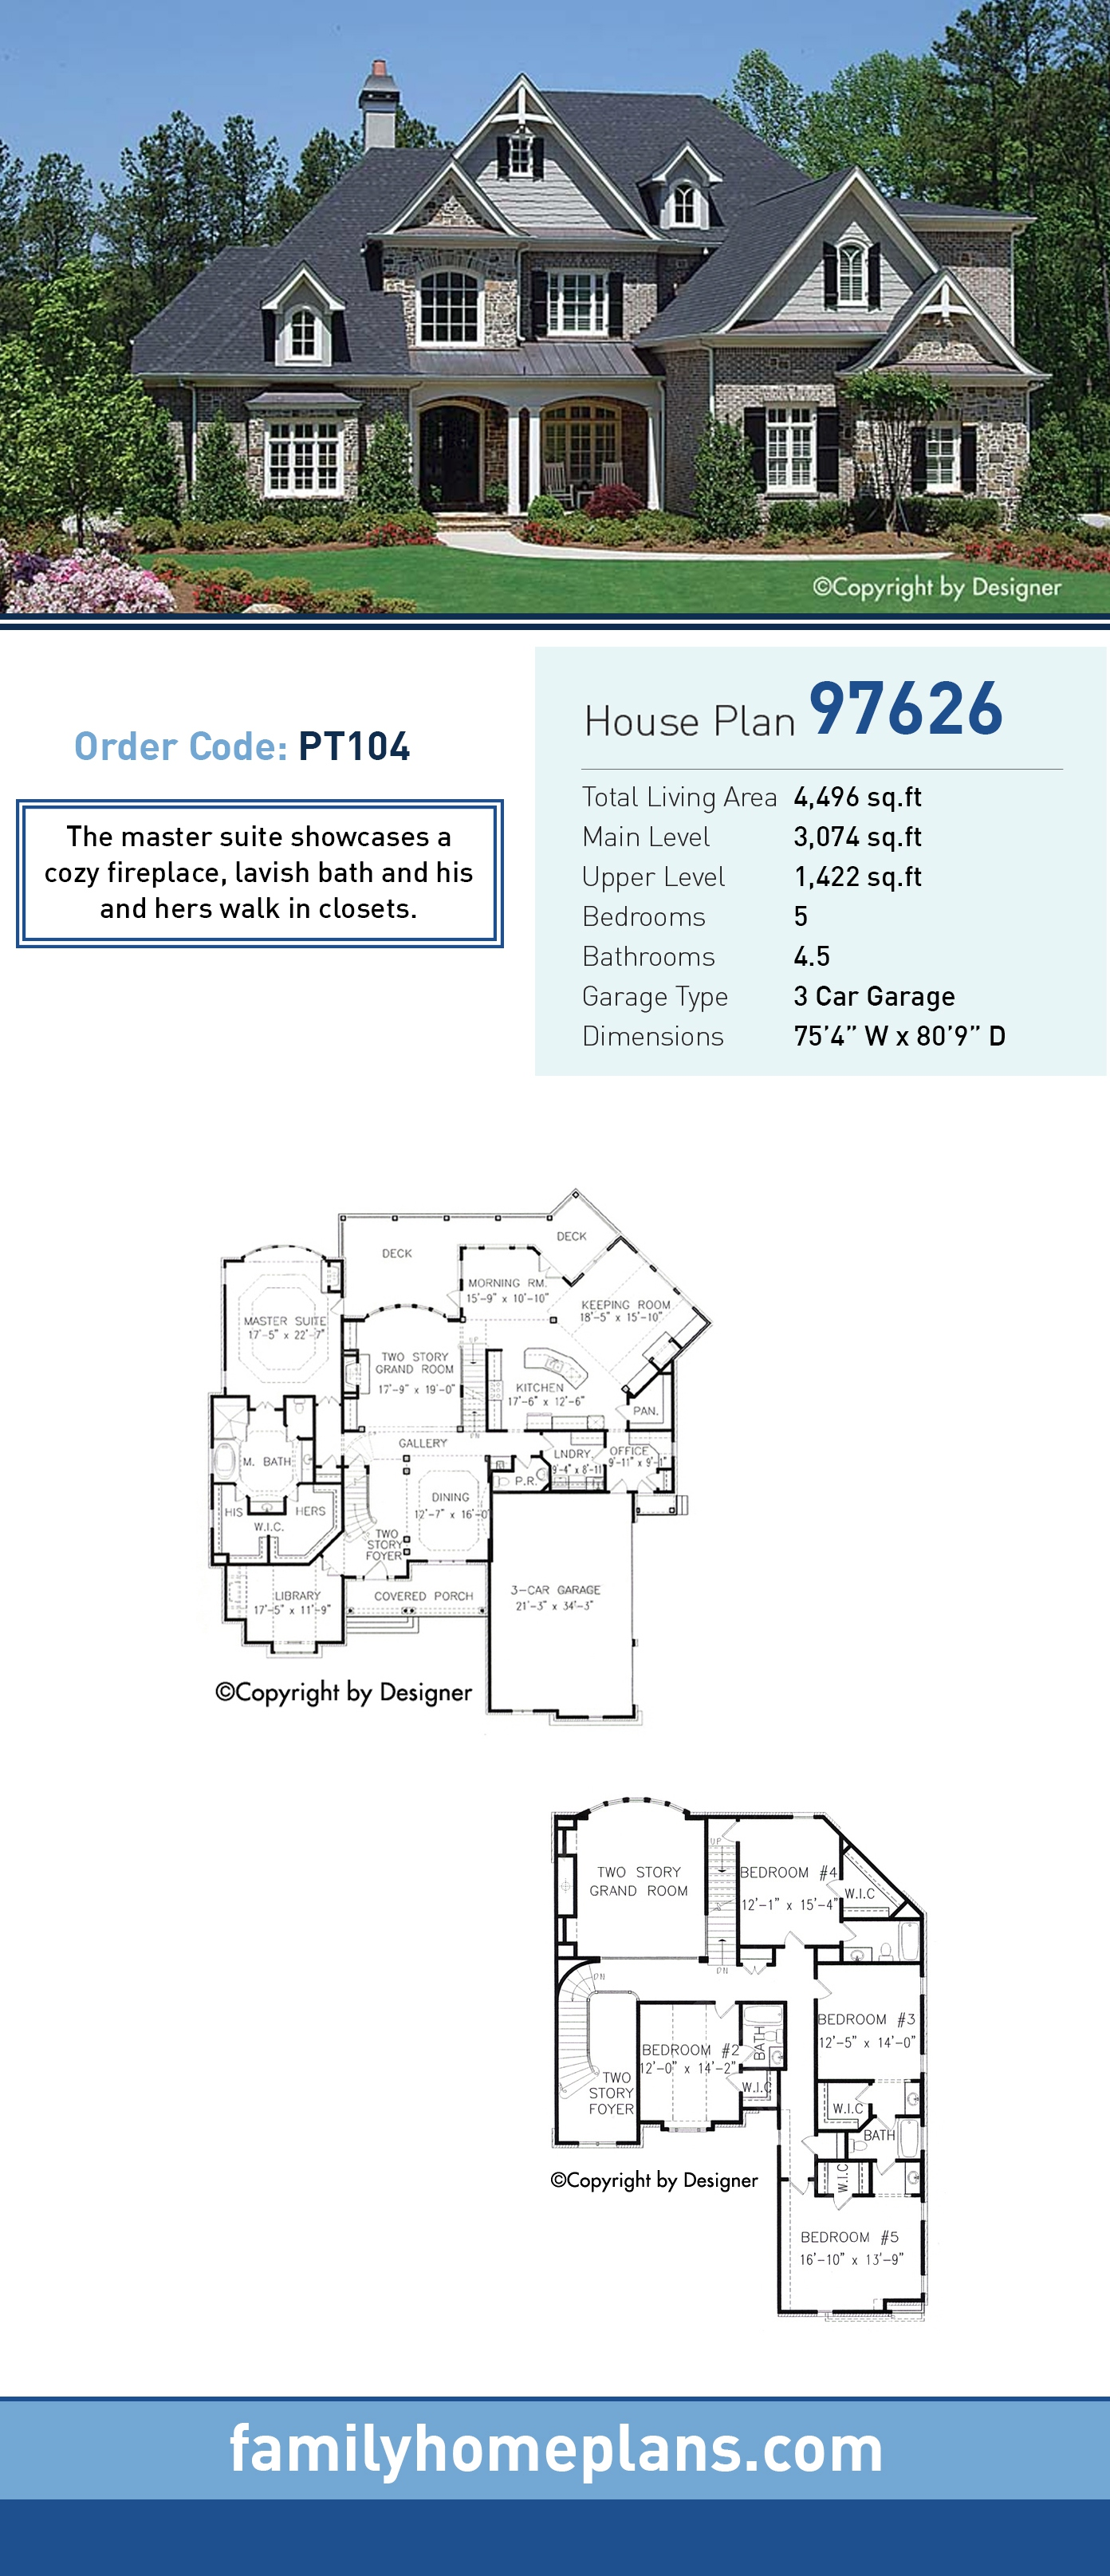 Traditional House Plan 97626 with 5 Beds, 5 Baths, 3 Car Garage